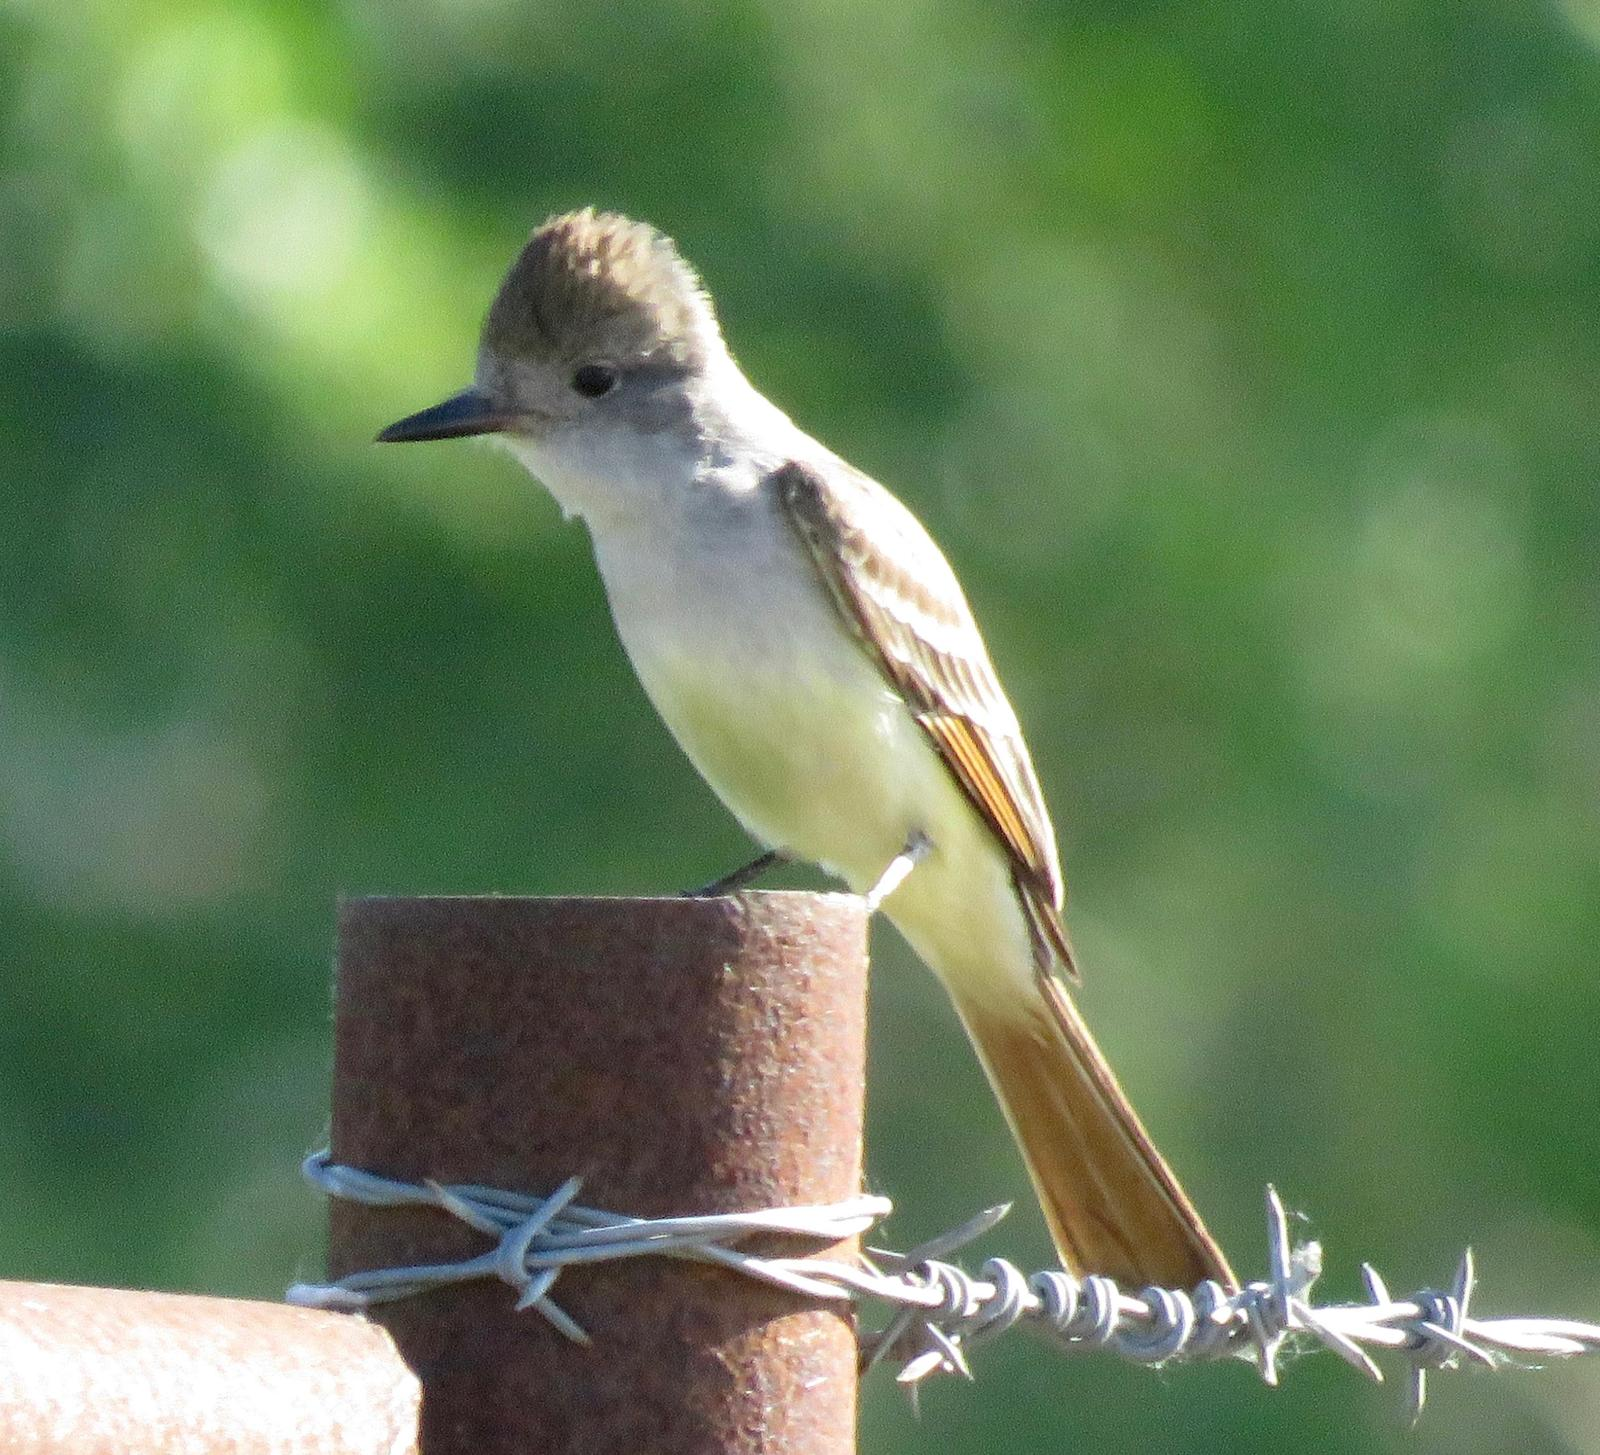 Ash-throated Flycatcher Photo by Don Glasco